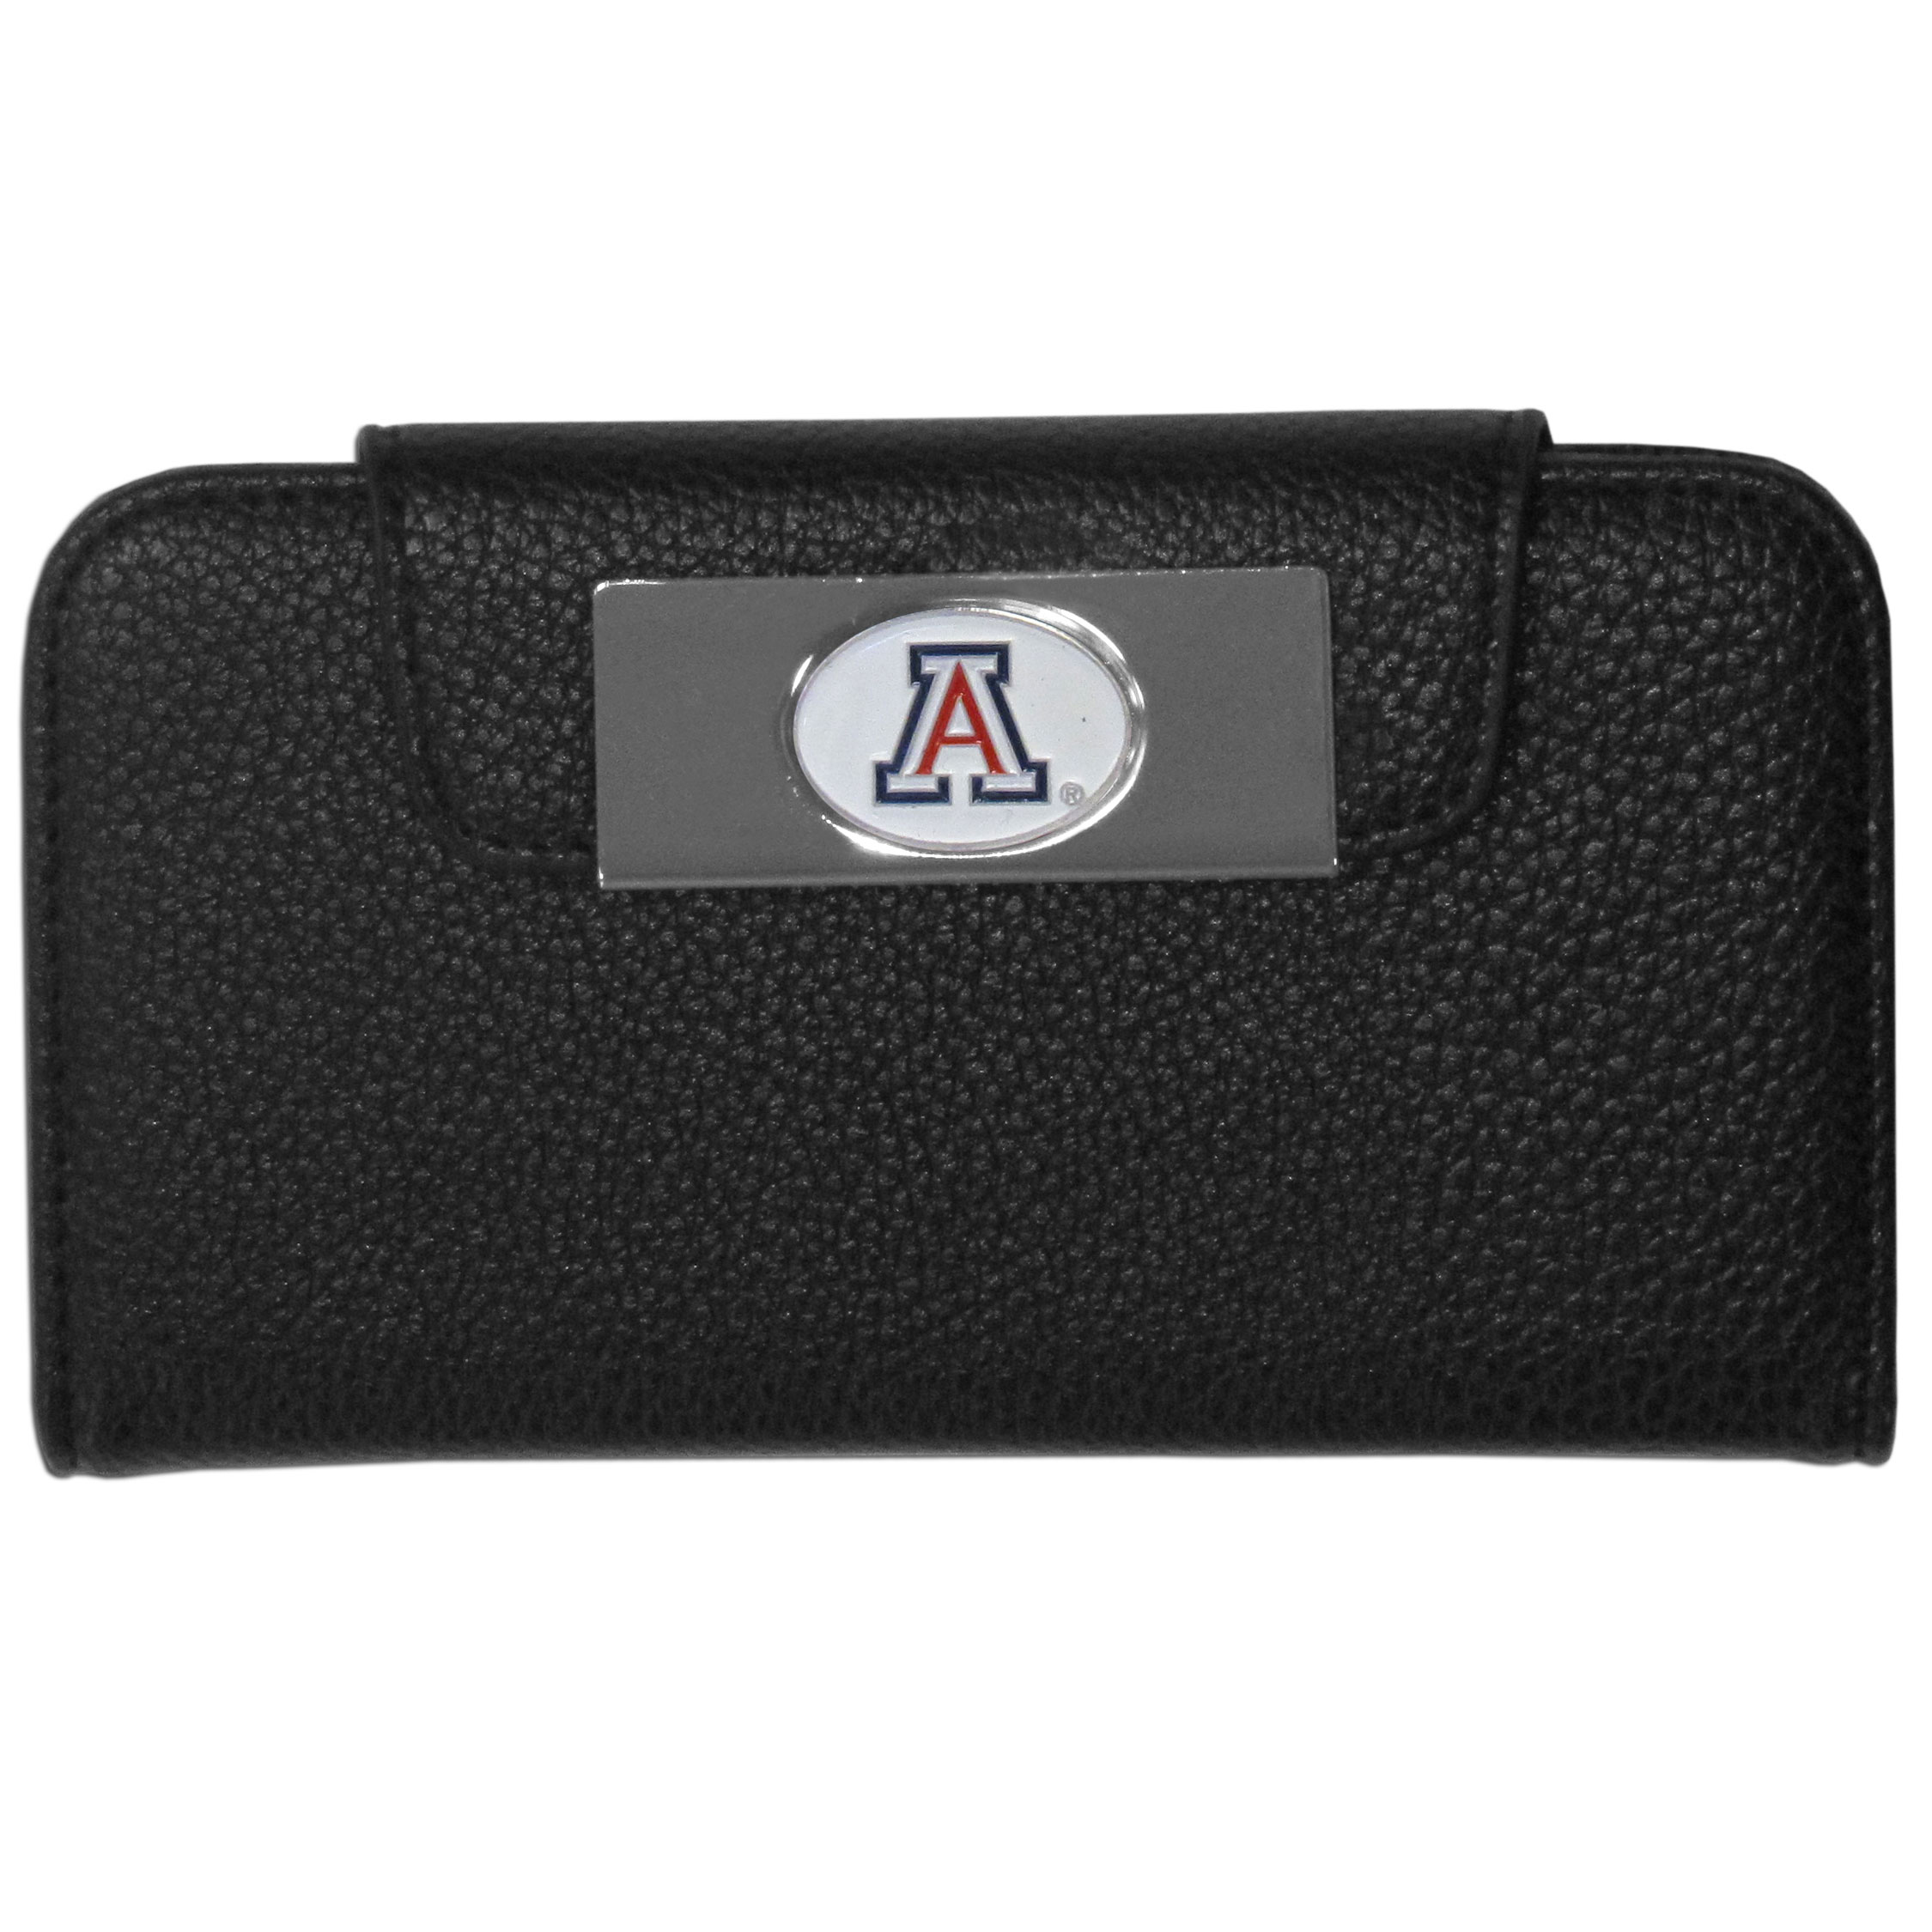 Arizona Wildcats iPhone 5/5S Wallet Case - This new & wildly popular case is ideal for those who like to travel light! The stylish case has an inner hard shell that securely holds your phone while allowing complete access to the phone's functionality. The flip cover has slots for credit cards, business cards and identification. The magnetic flip cover has a metal Arizona Wildcats emblem on a high polish chrome backing. Fits the iPhone 5/5S